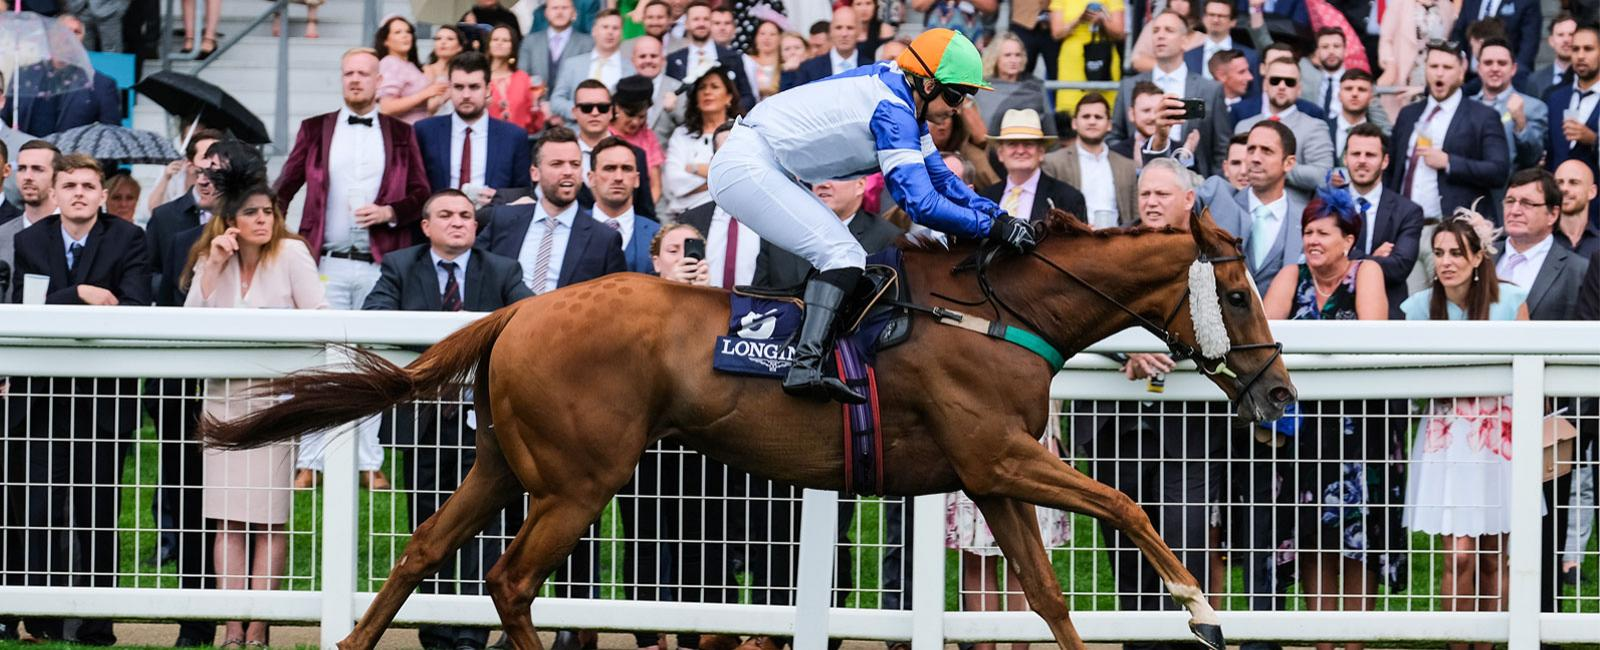 King George Day, The Longines Handicap Stakes; Pferderennen; 2019